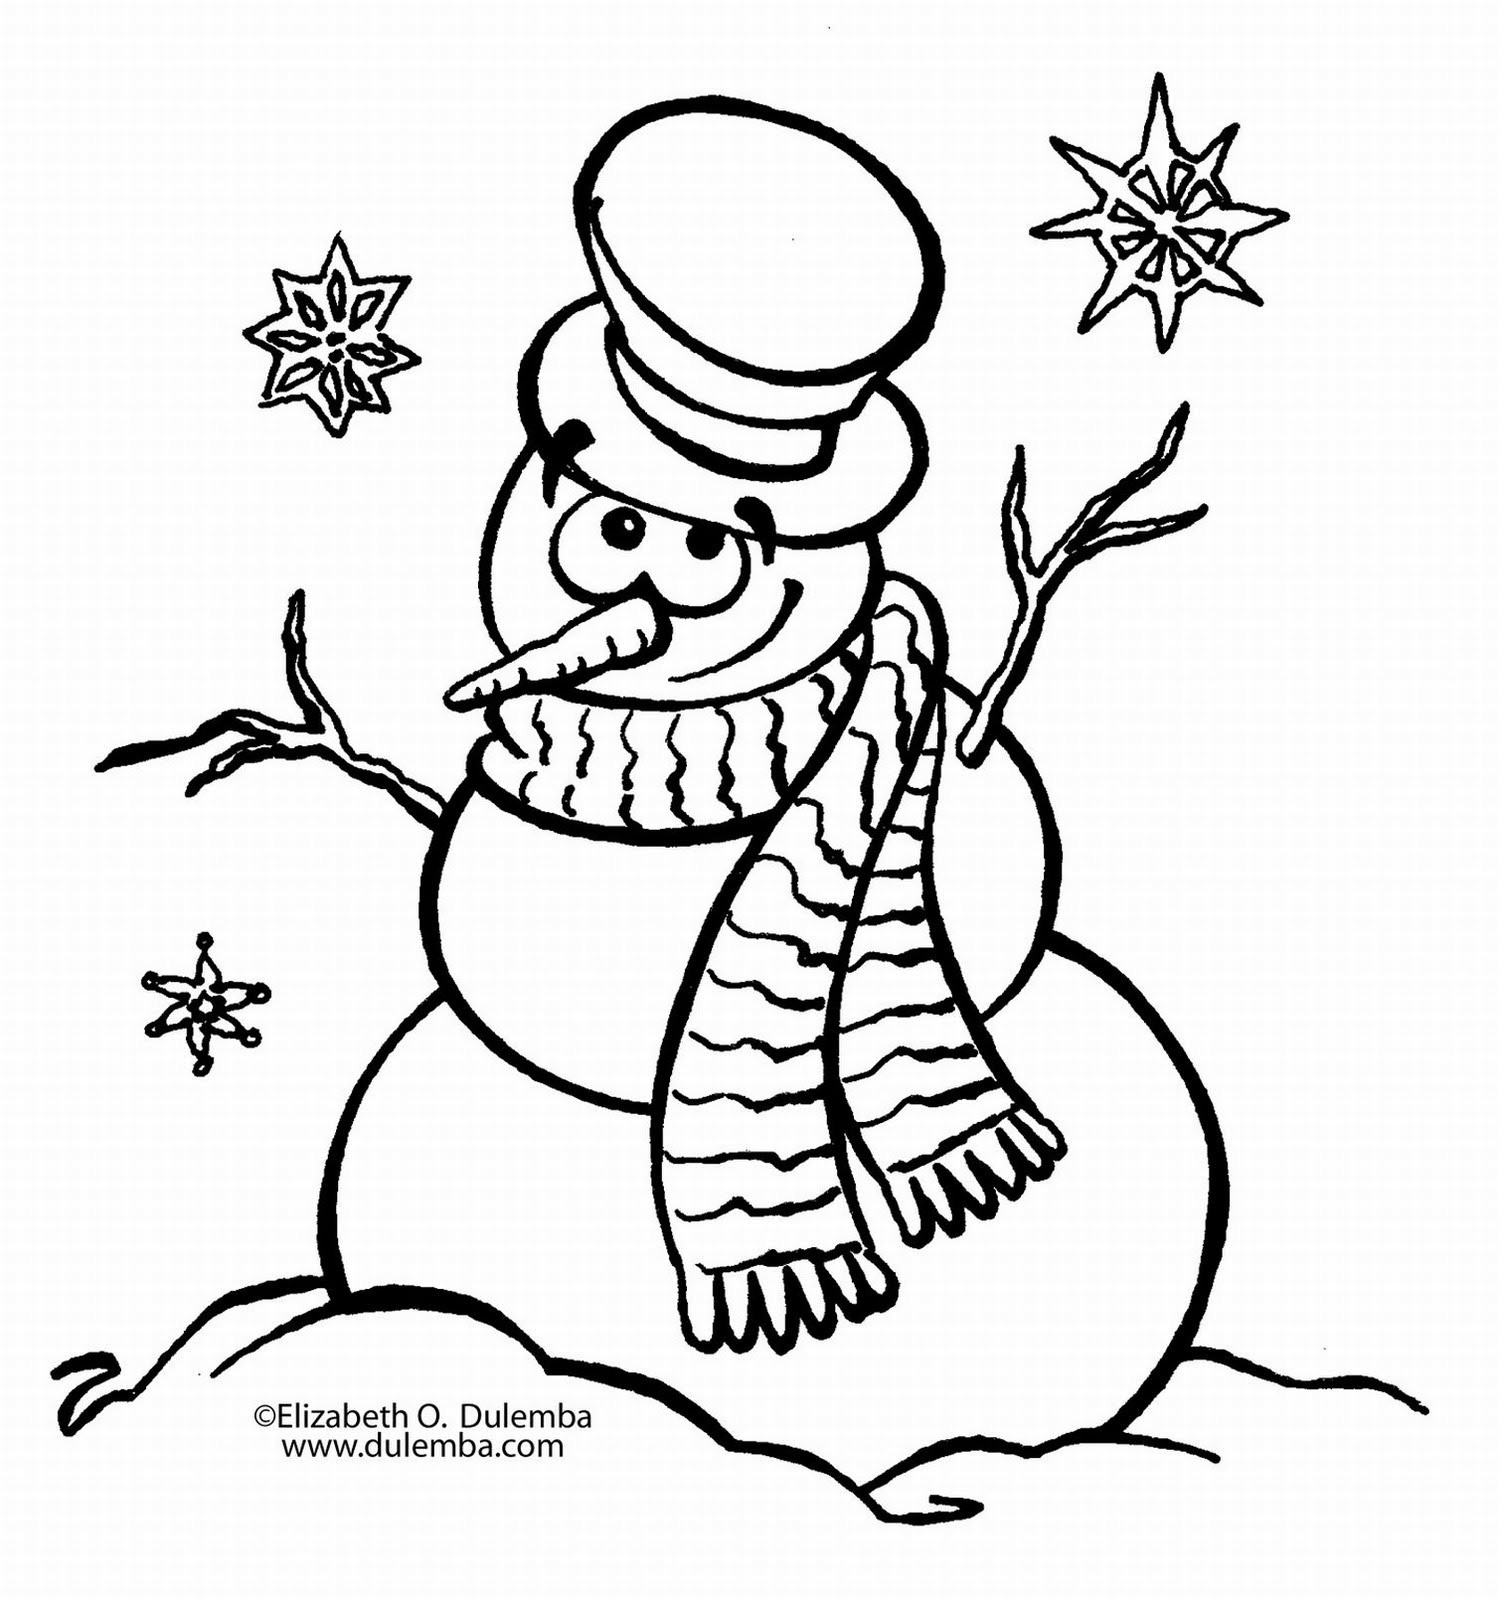 1499x1600 Blank Snowman Coloring Pages Disney To Print Of Christmas